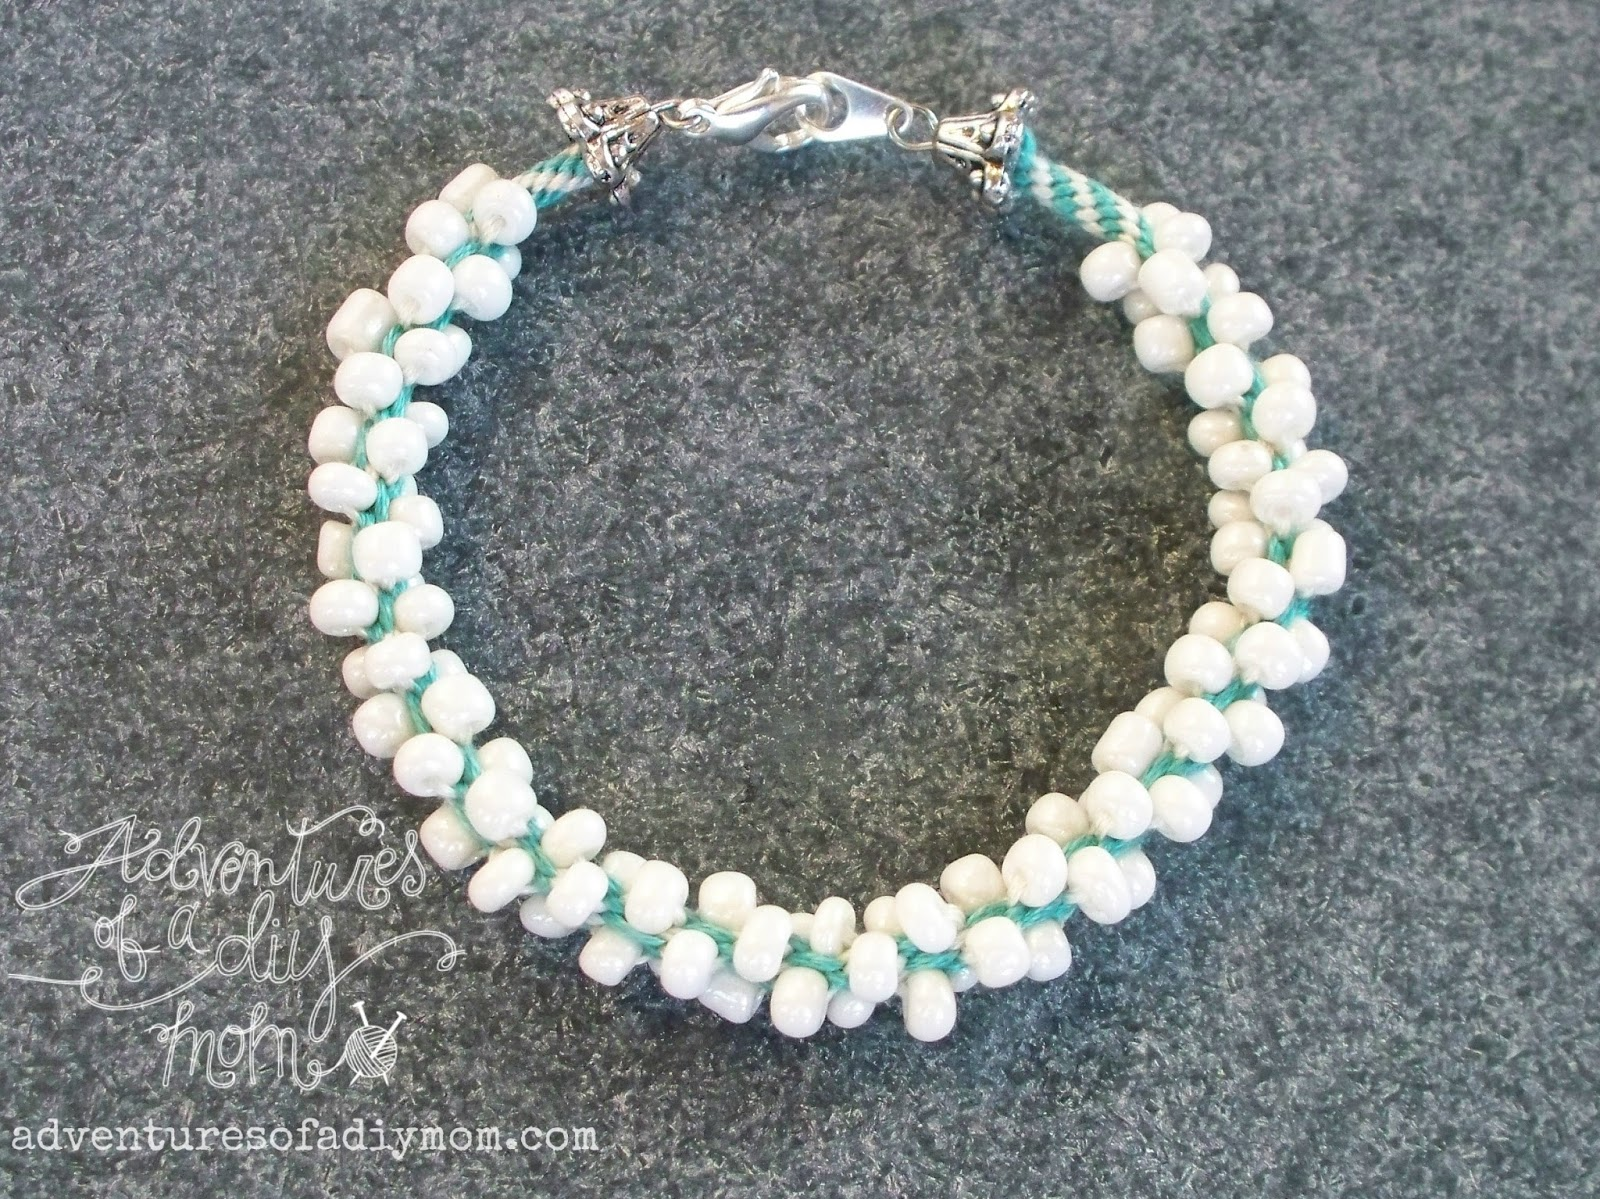 embroidery thread and seed bead kumihimo bracelets and a